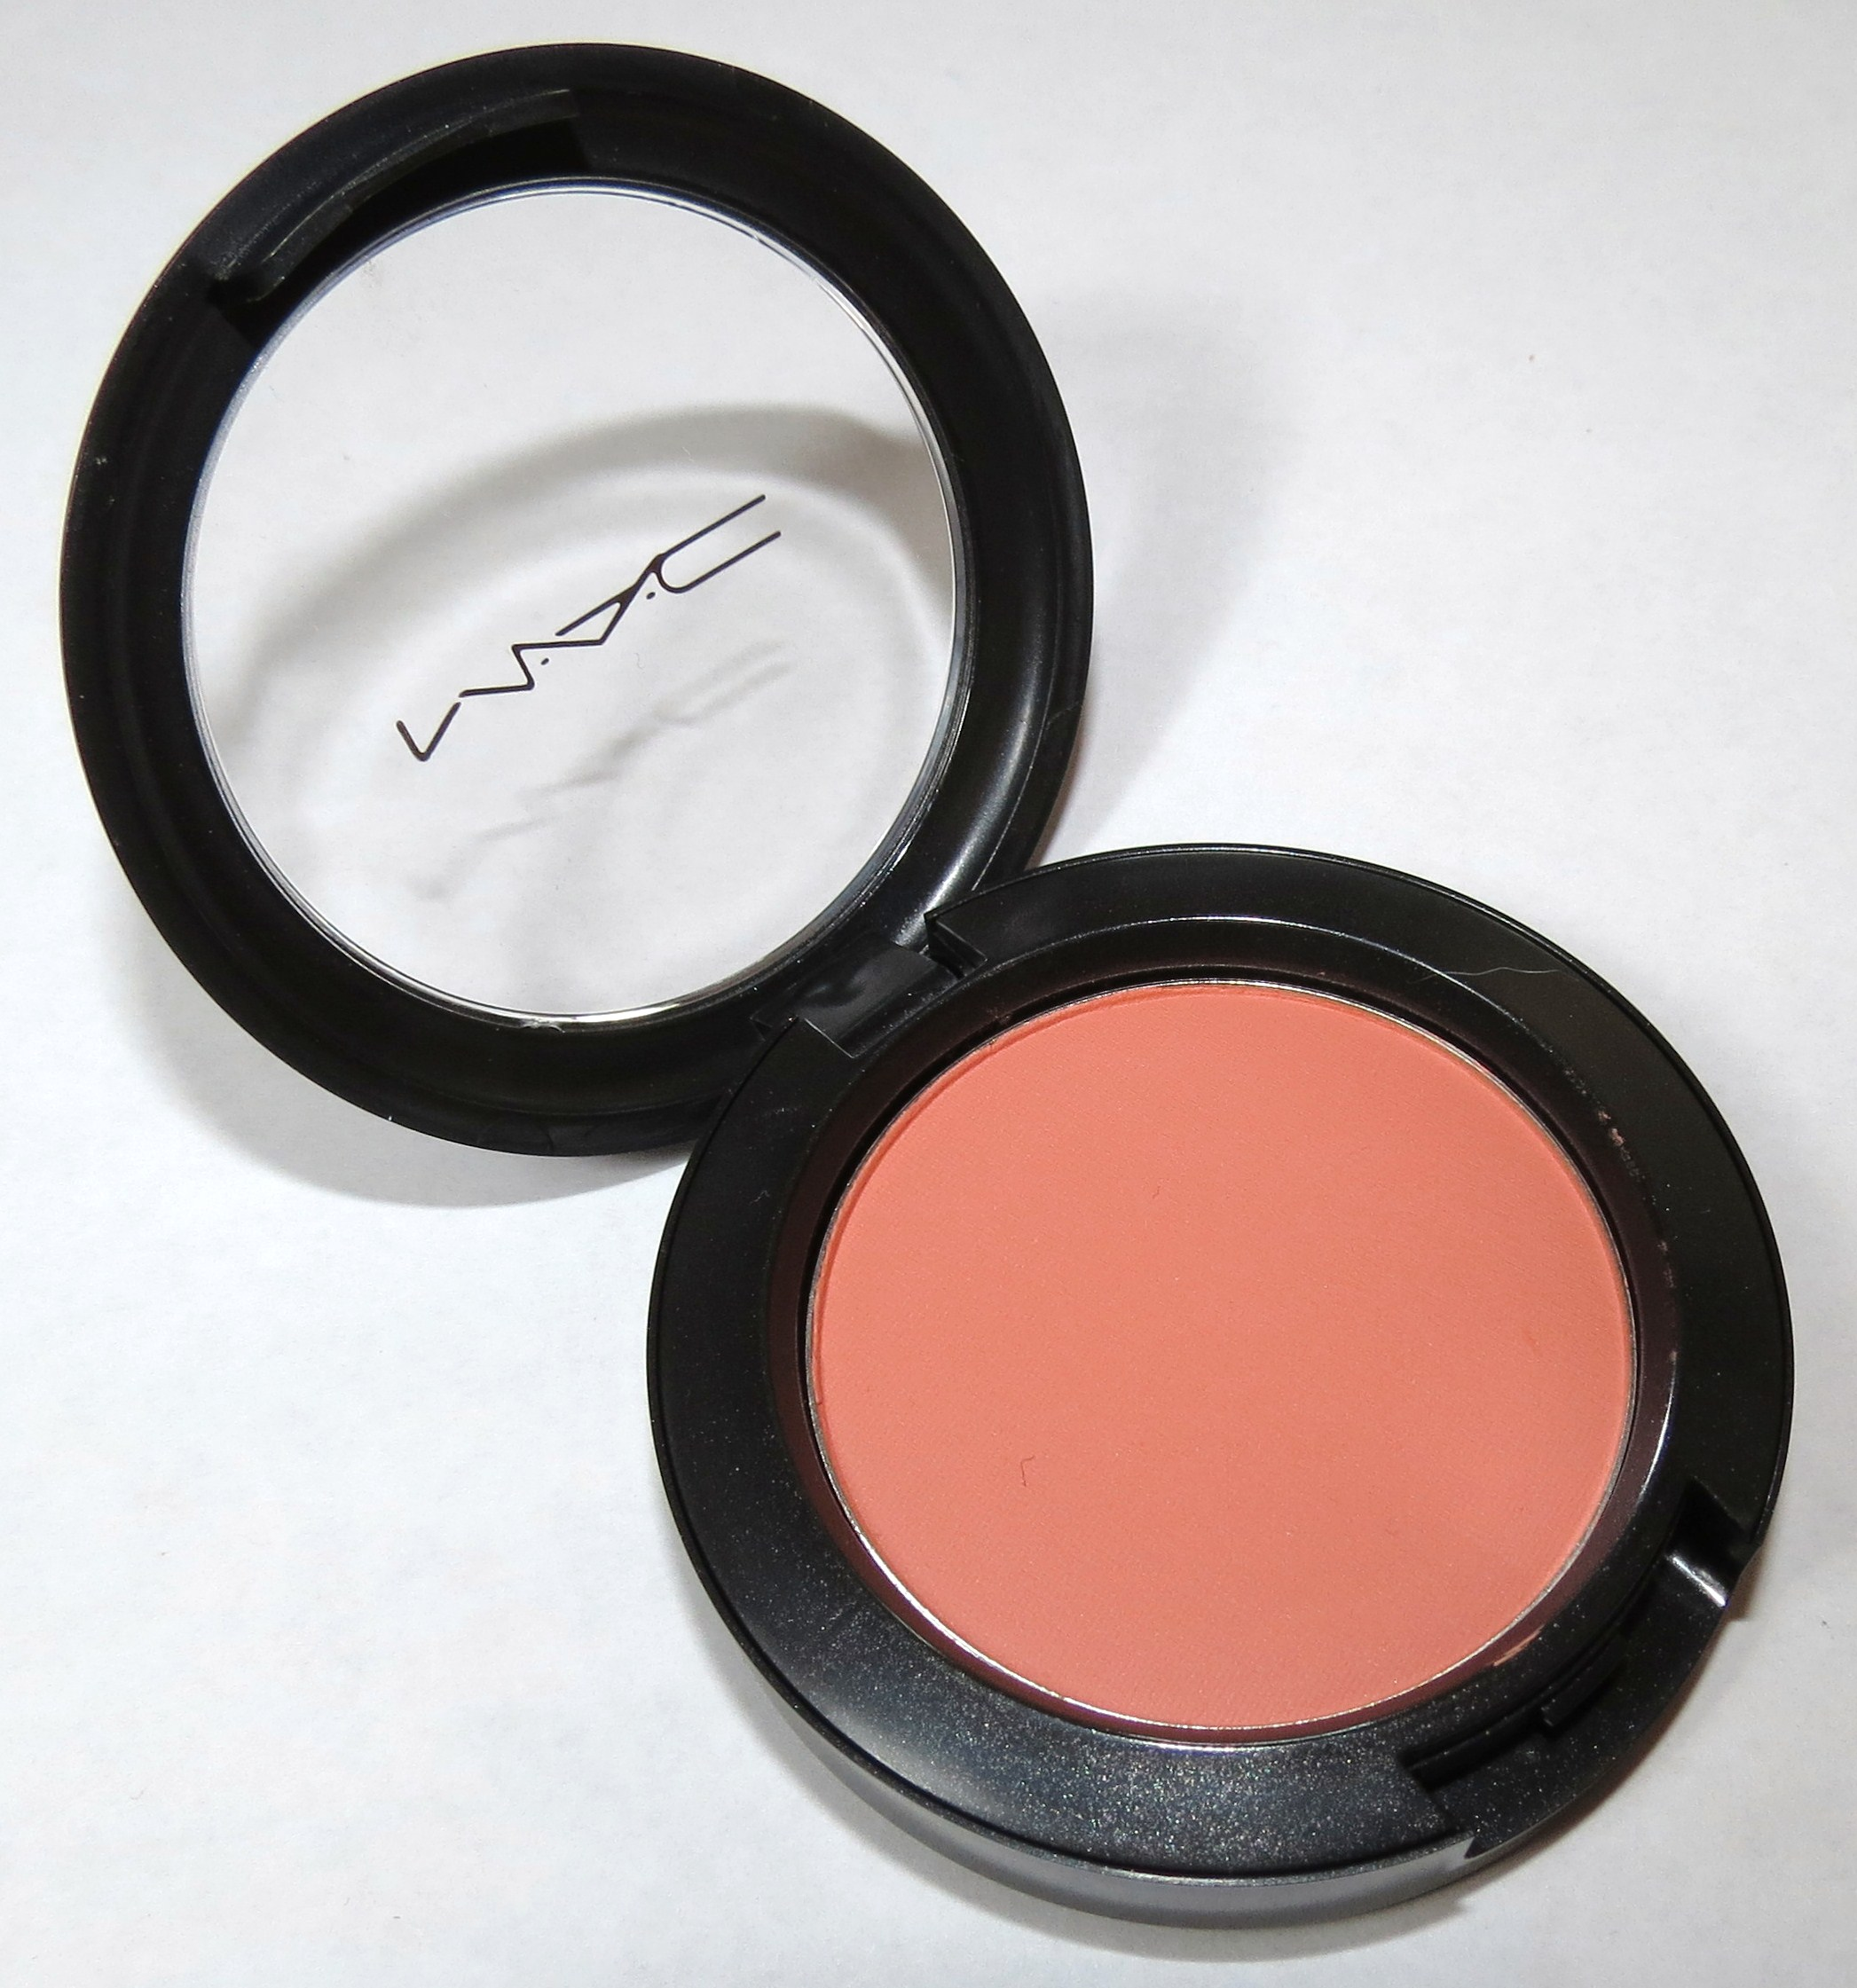 Populaire MAC Peaches Powder Blush Swatches & Review - Blushing Noir UX86